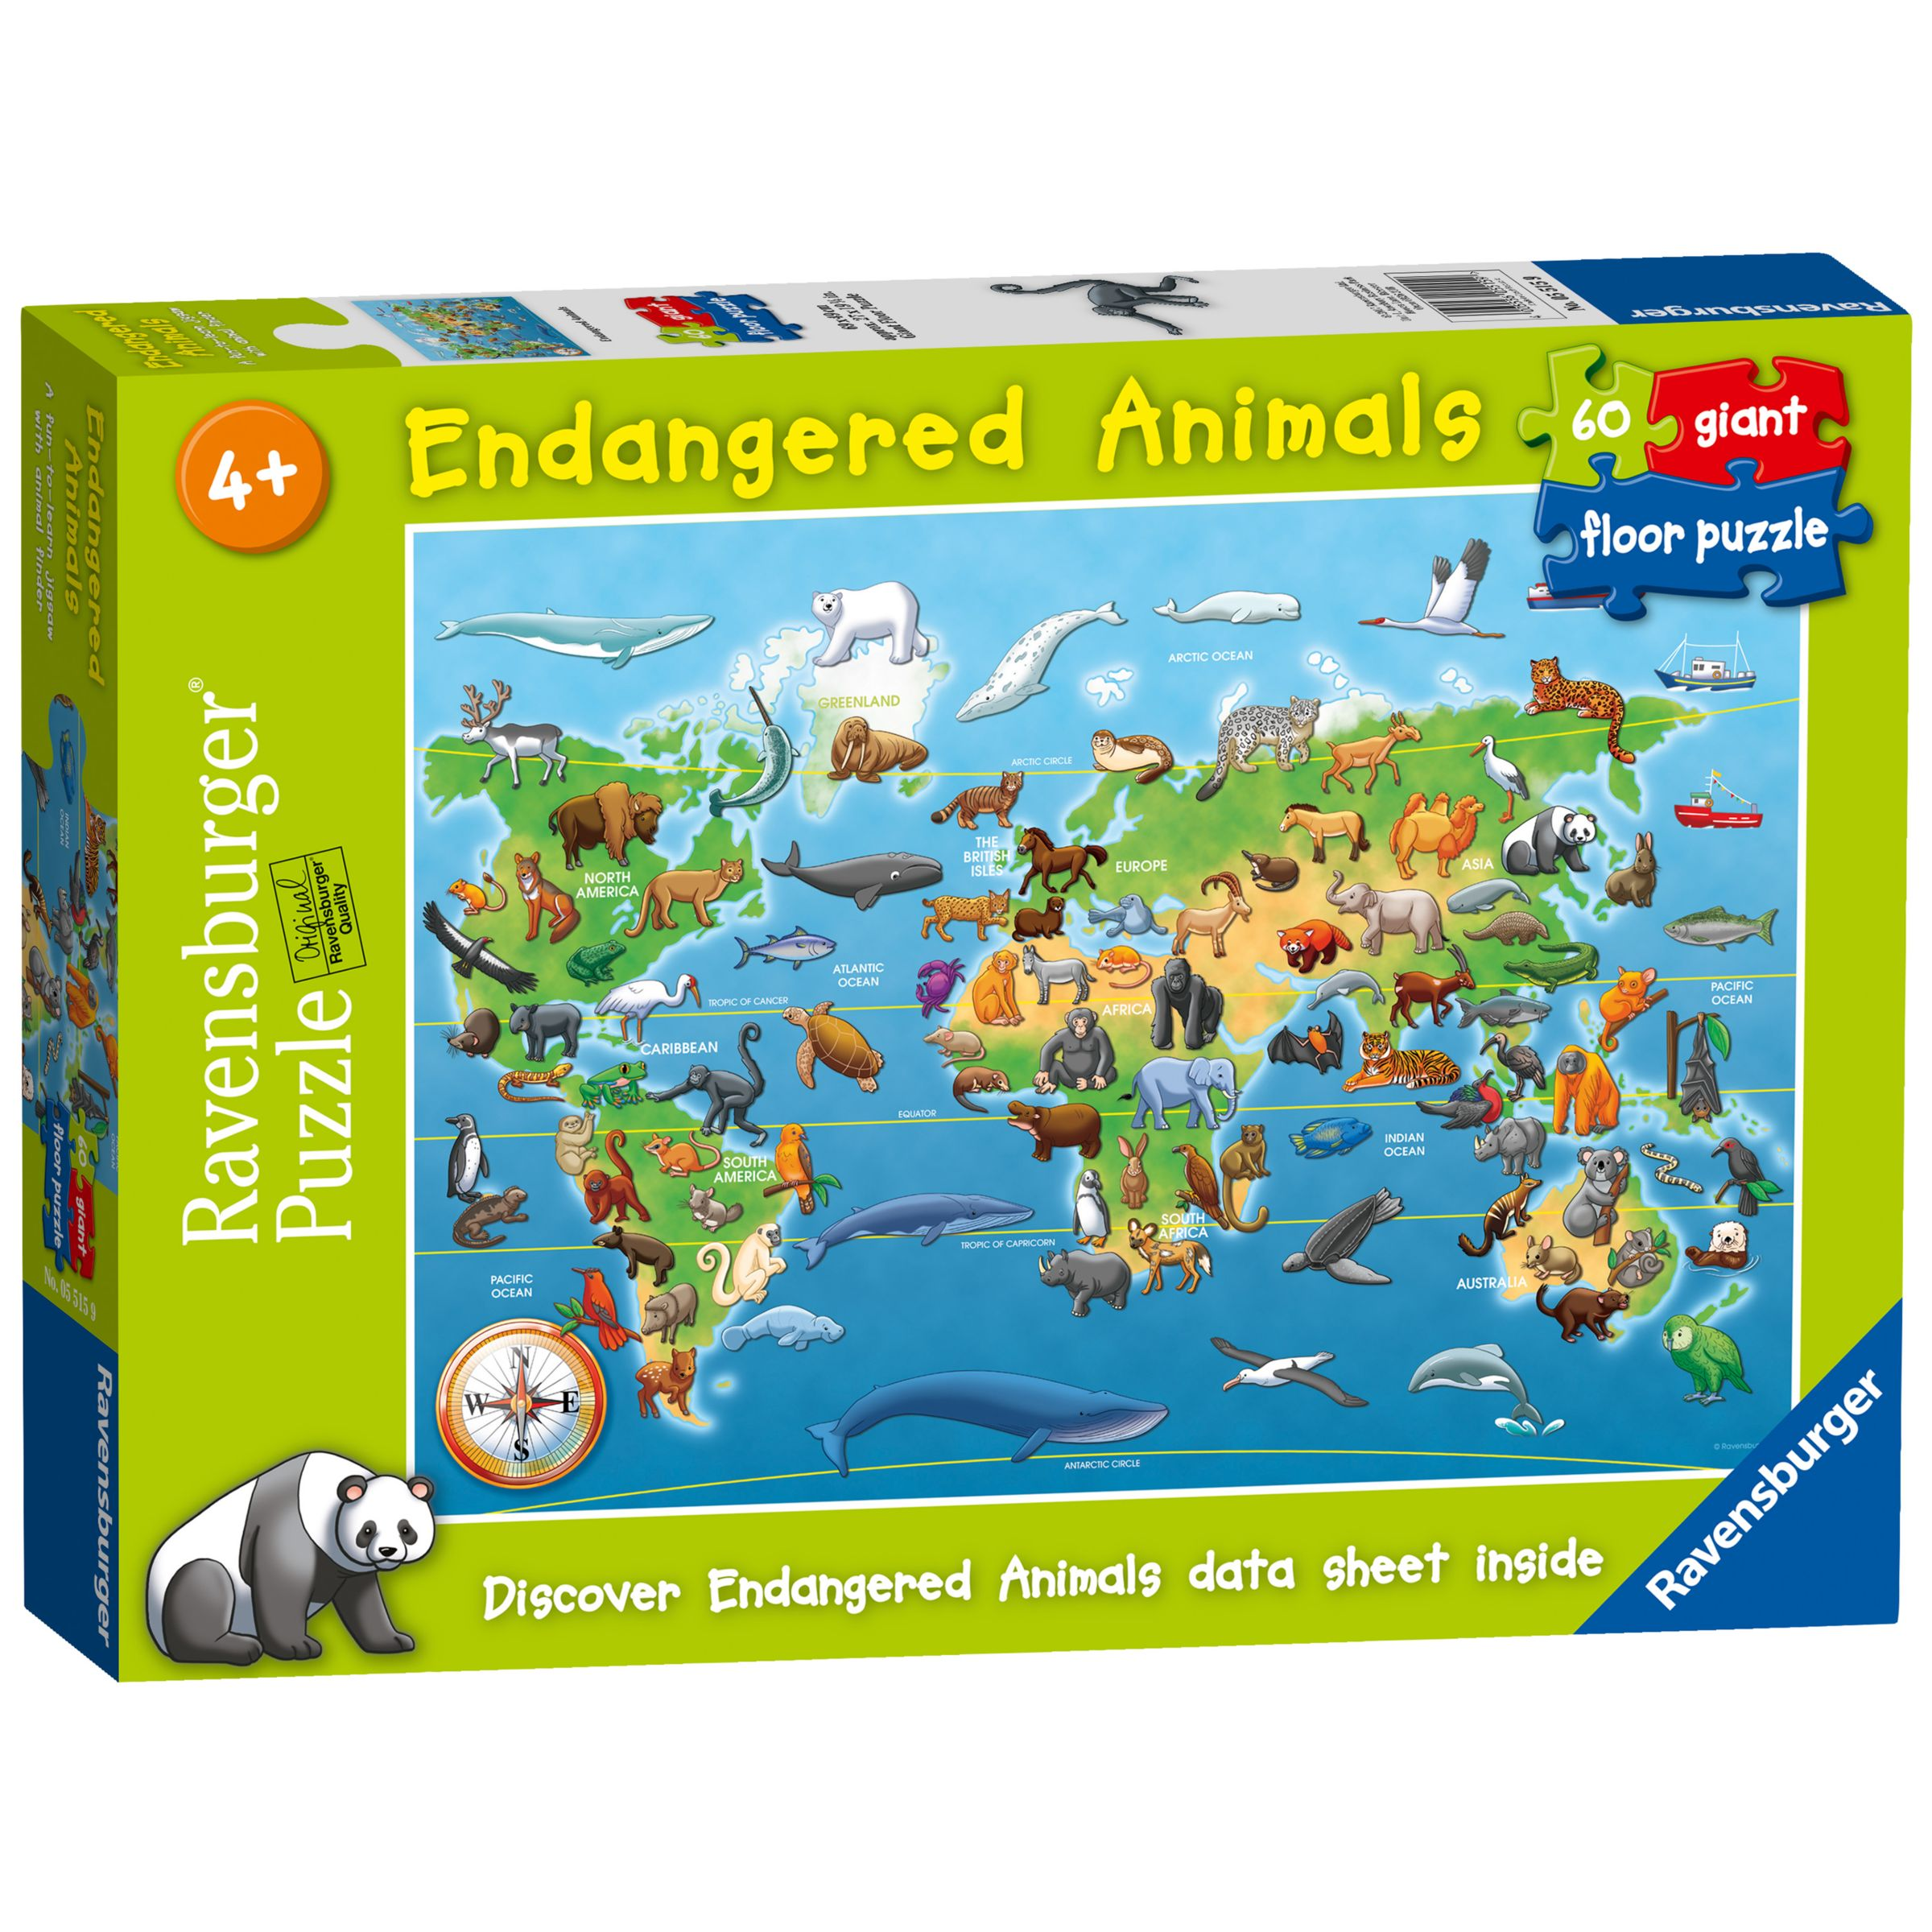 Ravensburger Ravensburger Endangered Animals Jigsaw Puzzle, 60 Pieces